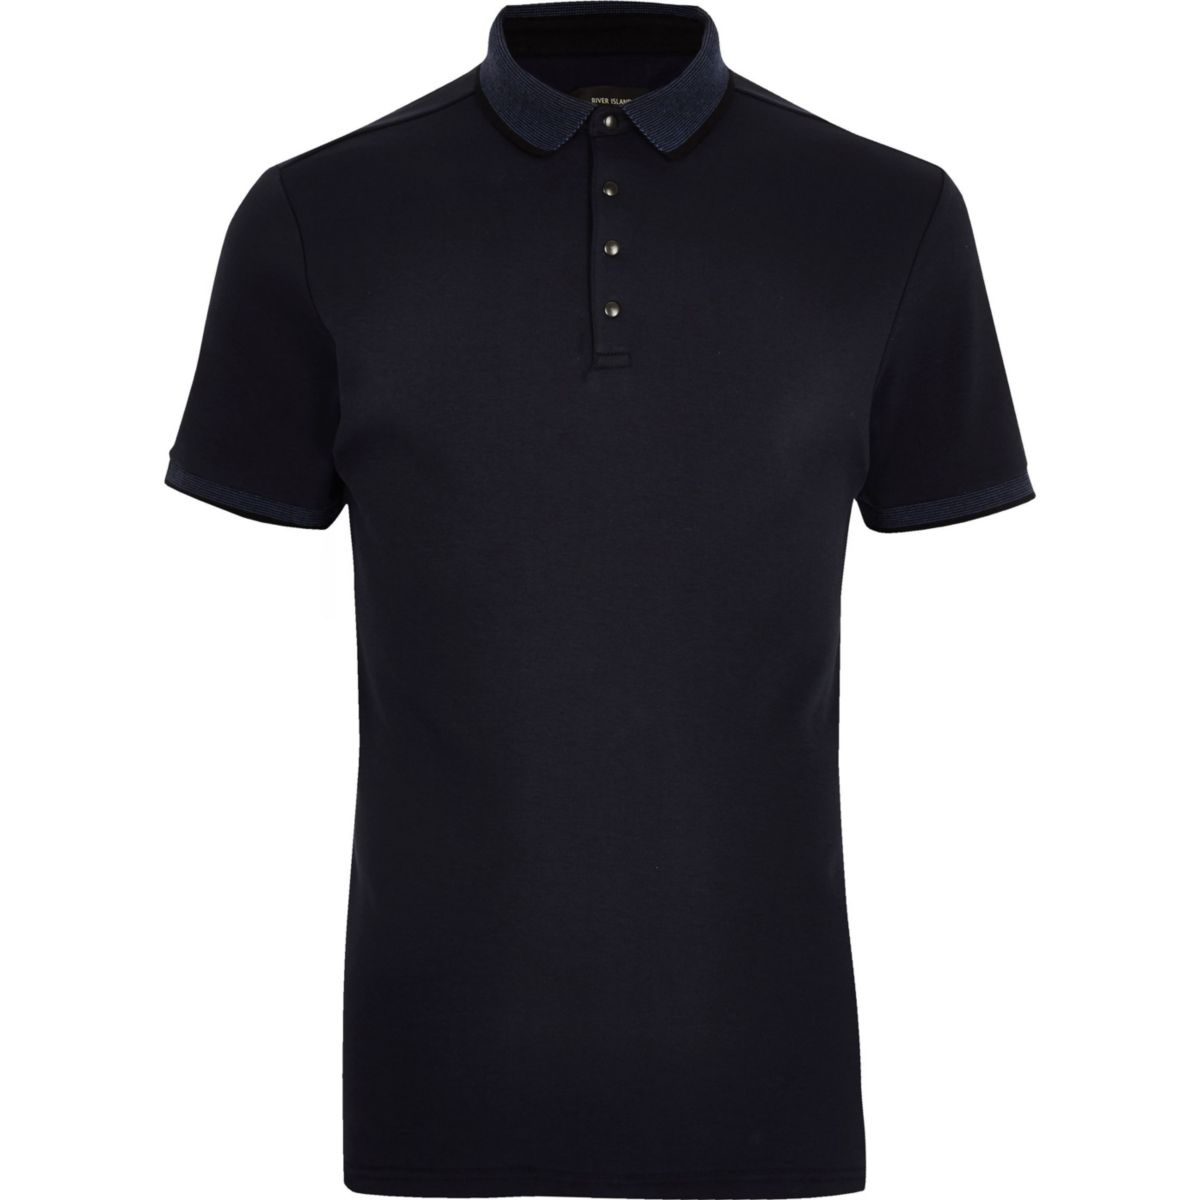 Big and Tall navy tipped polo shirt